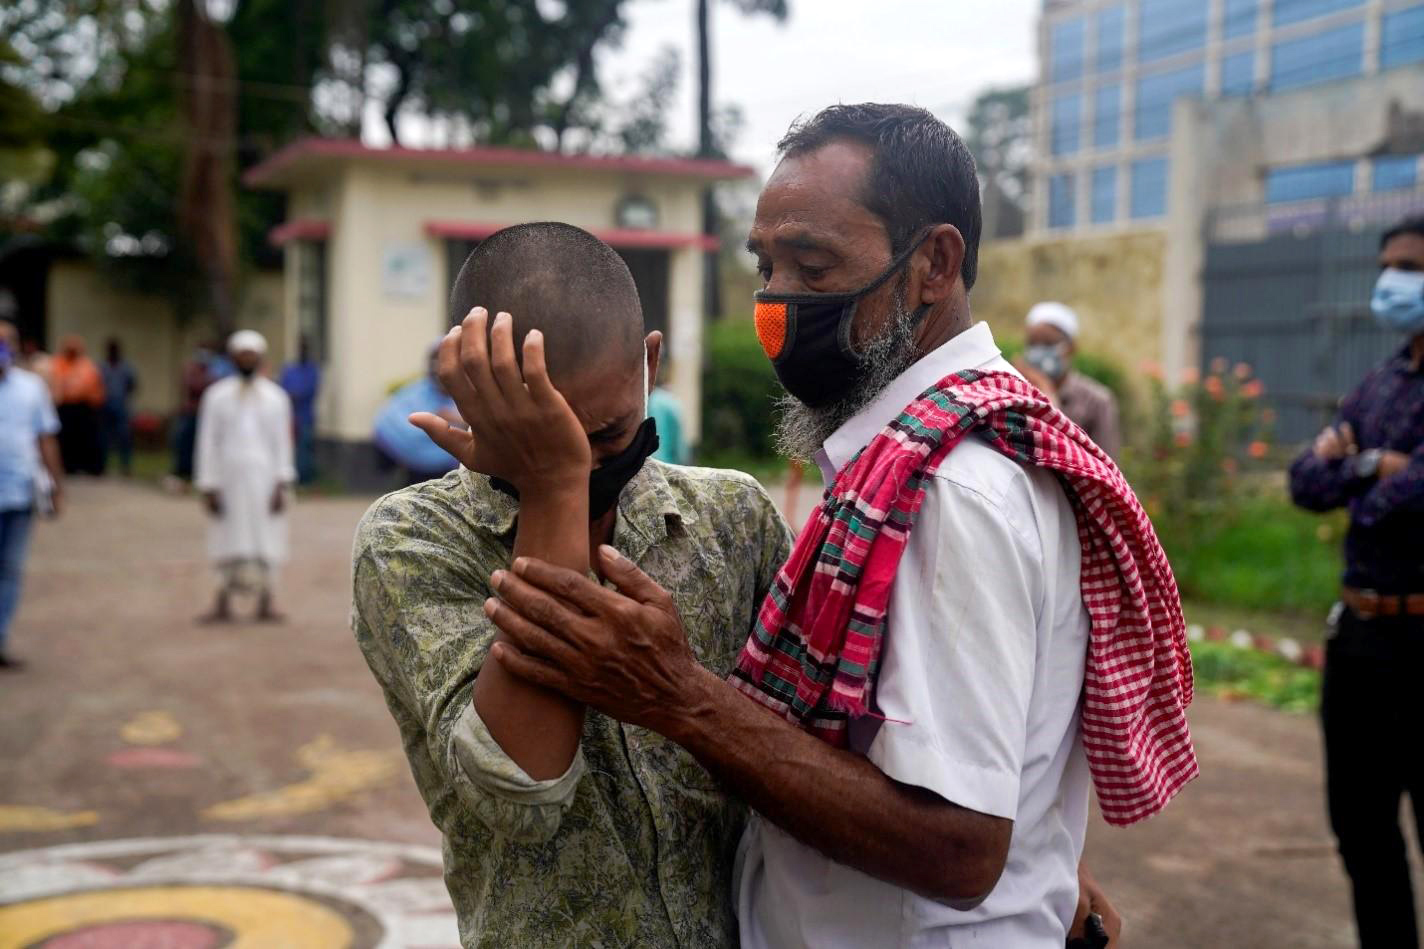 An older man comforts a younger man, who is crying.